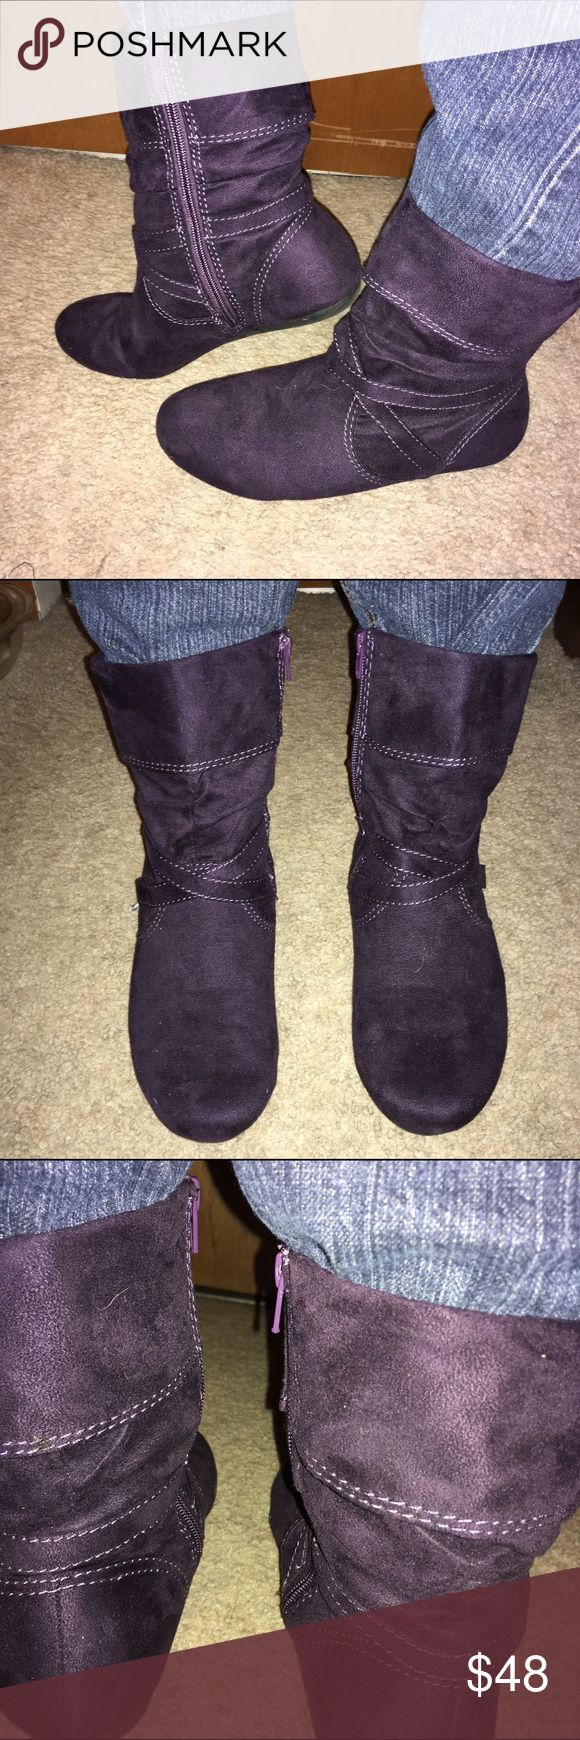 EUC Purple Suede Jester Cowboy Boots ZipUp Size 10 Lower East Side Deep Purple Suede Side Zip Up Ankle Boots. Cannot decide if these are Jester or Cowboy Cowgirl Western style. Wore them ONE TIME only to work for Mardi Gras / Fat Tuesday and they have been in the closet since. I have too much arthritis to enjoy them. My loss is your gain. Roomy Size 10. No trades or comment negotiations. I wish I had better feet. I love ❤️ these. Lower East Side Shoes Ankle Boots & Booties